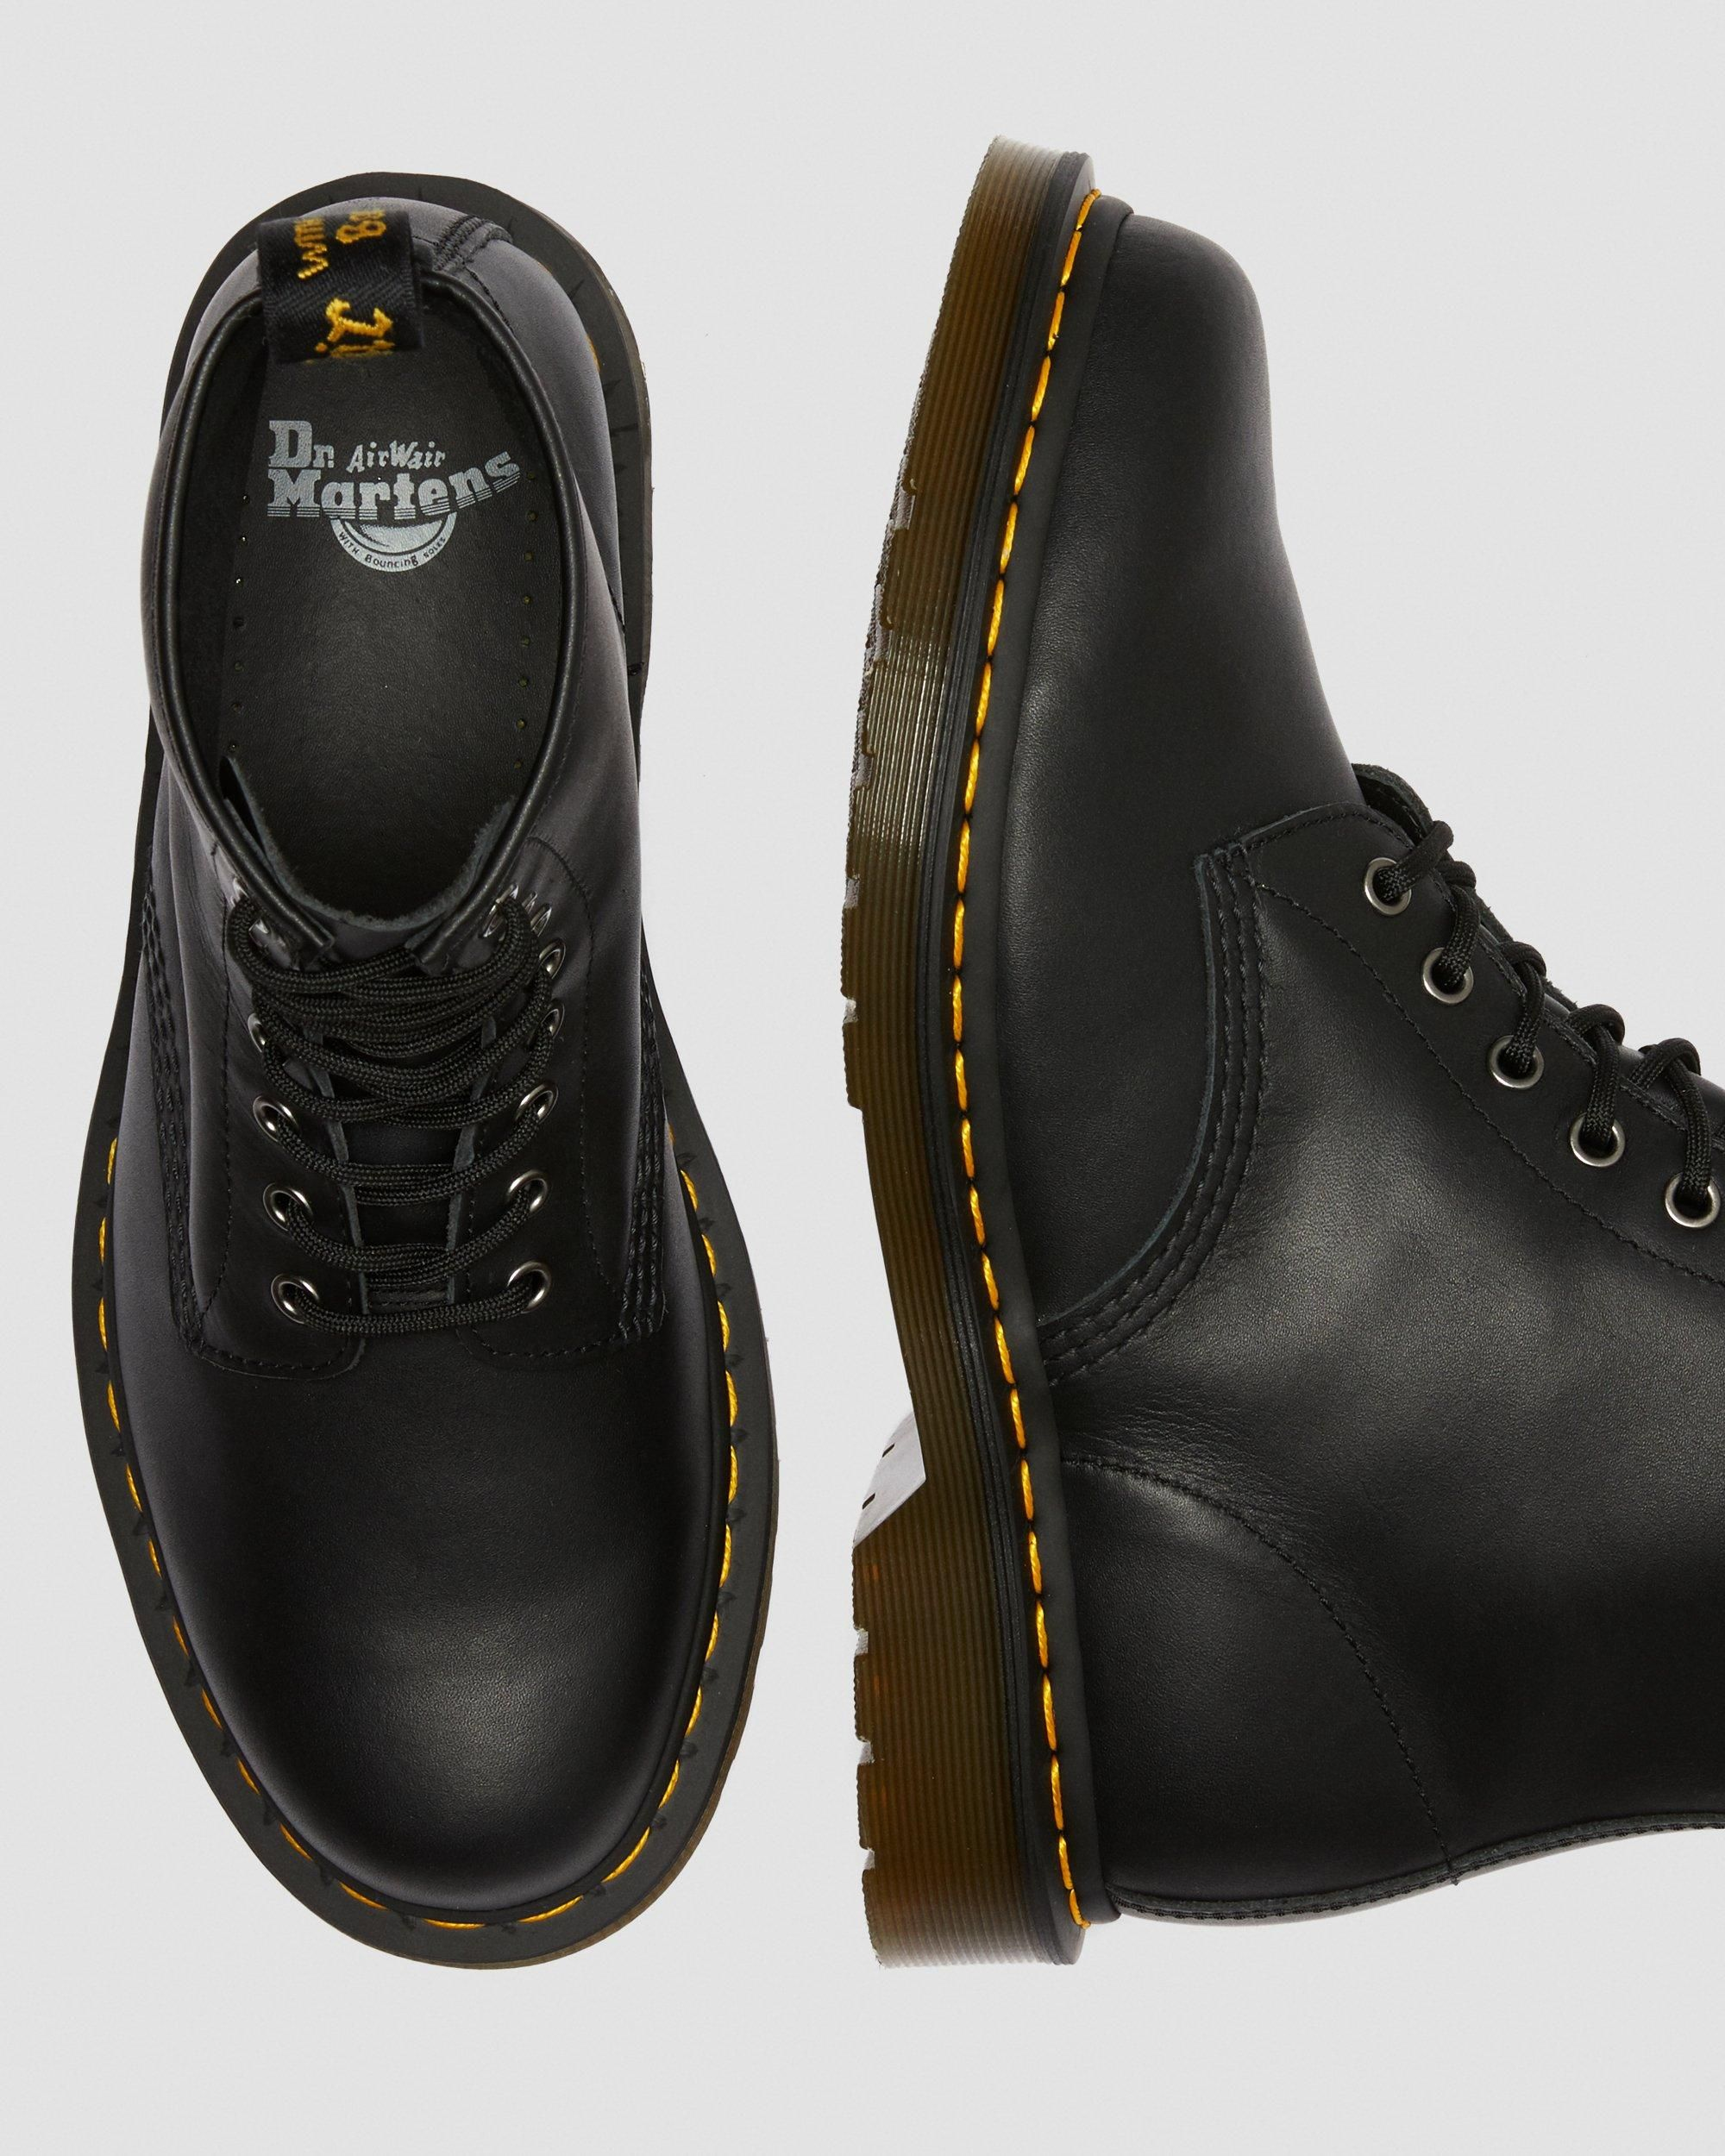 DR MARTENS 1460 NAPPA LEATHER LACE UP